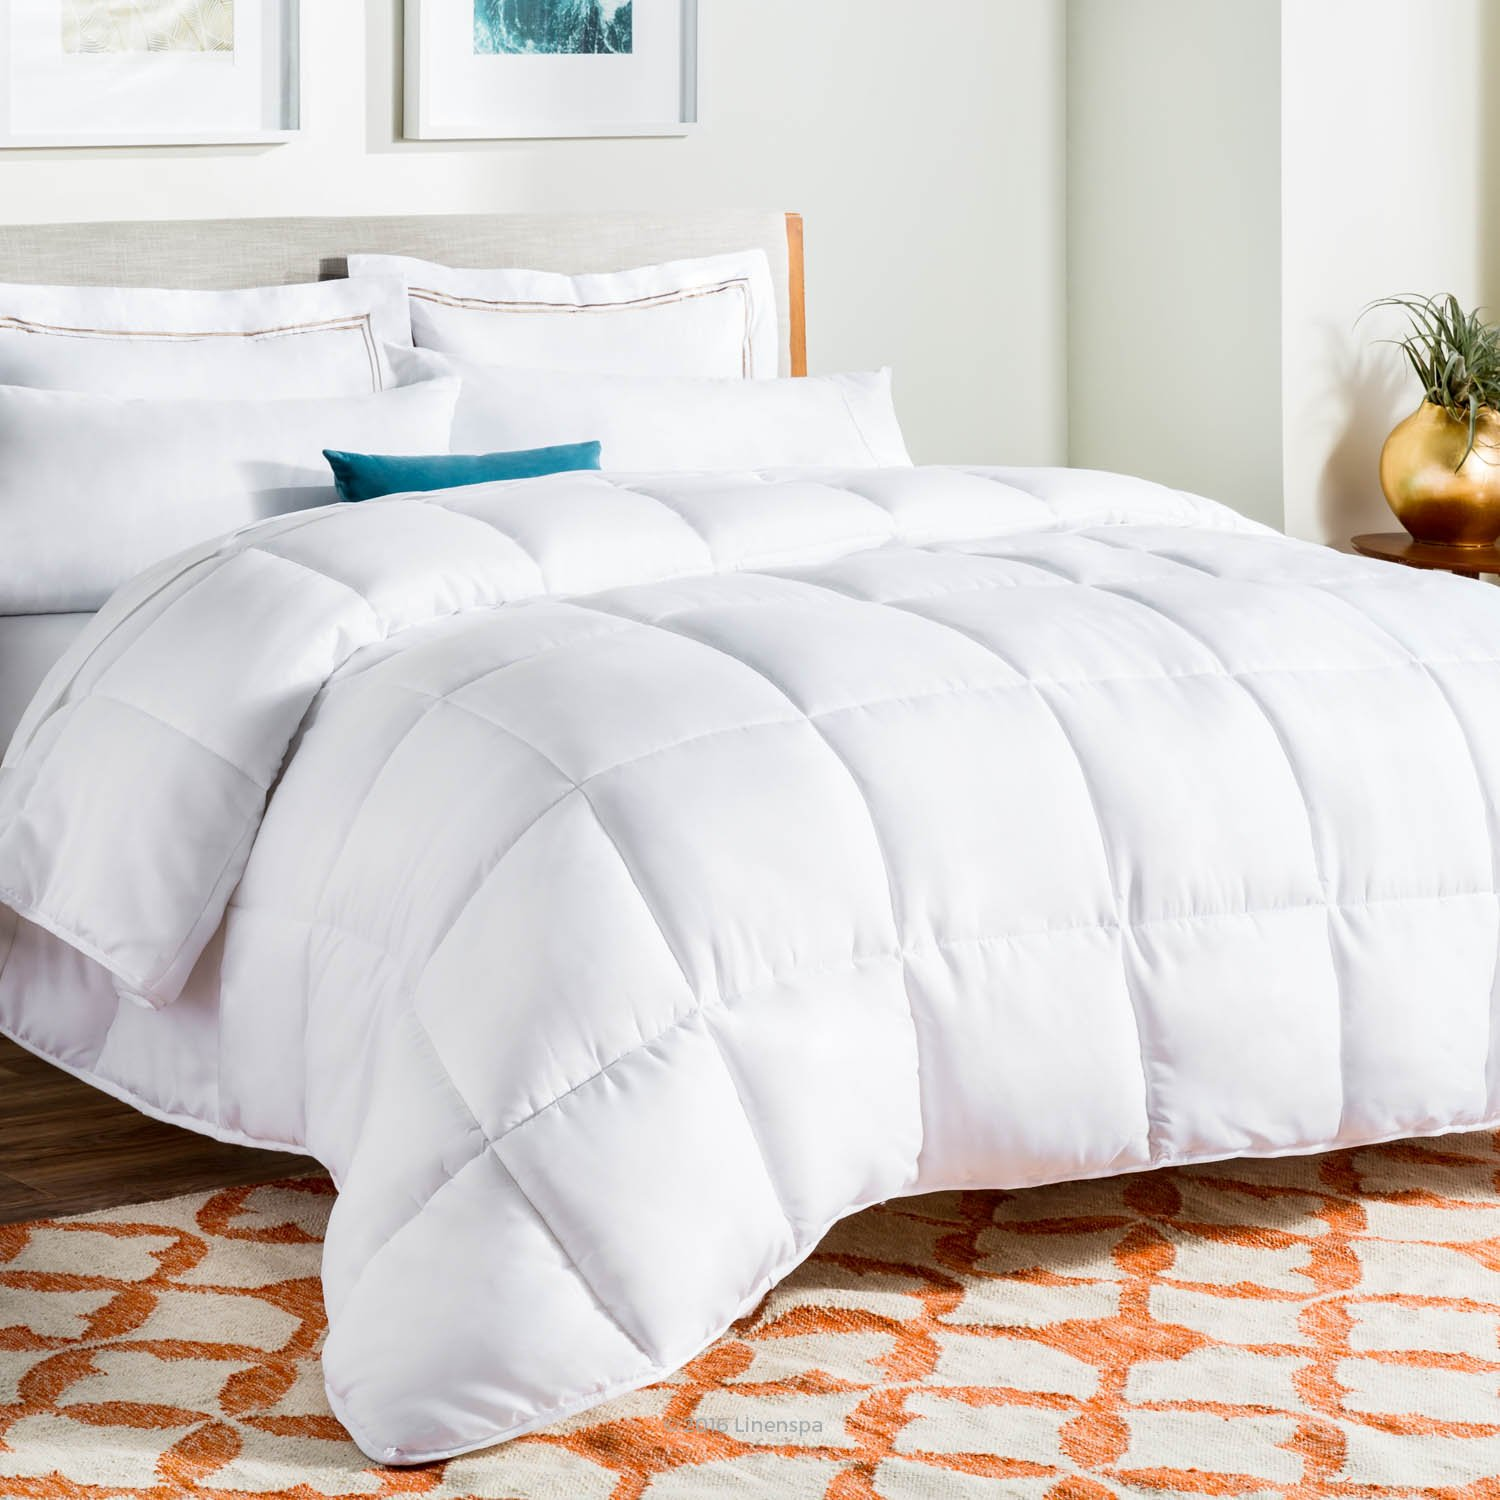 duvet c white comforter set cover collection bedding hill cherry includes design main style and save ruched cropped